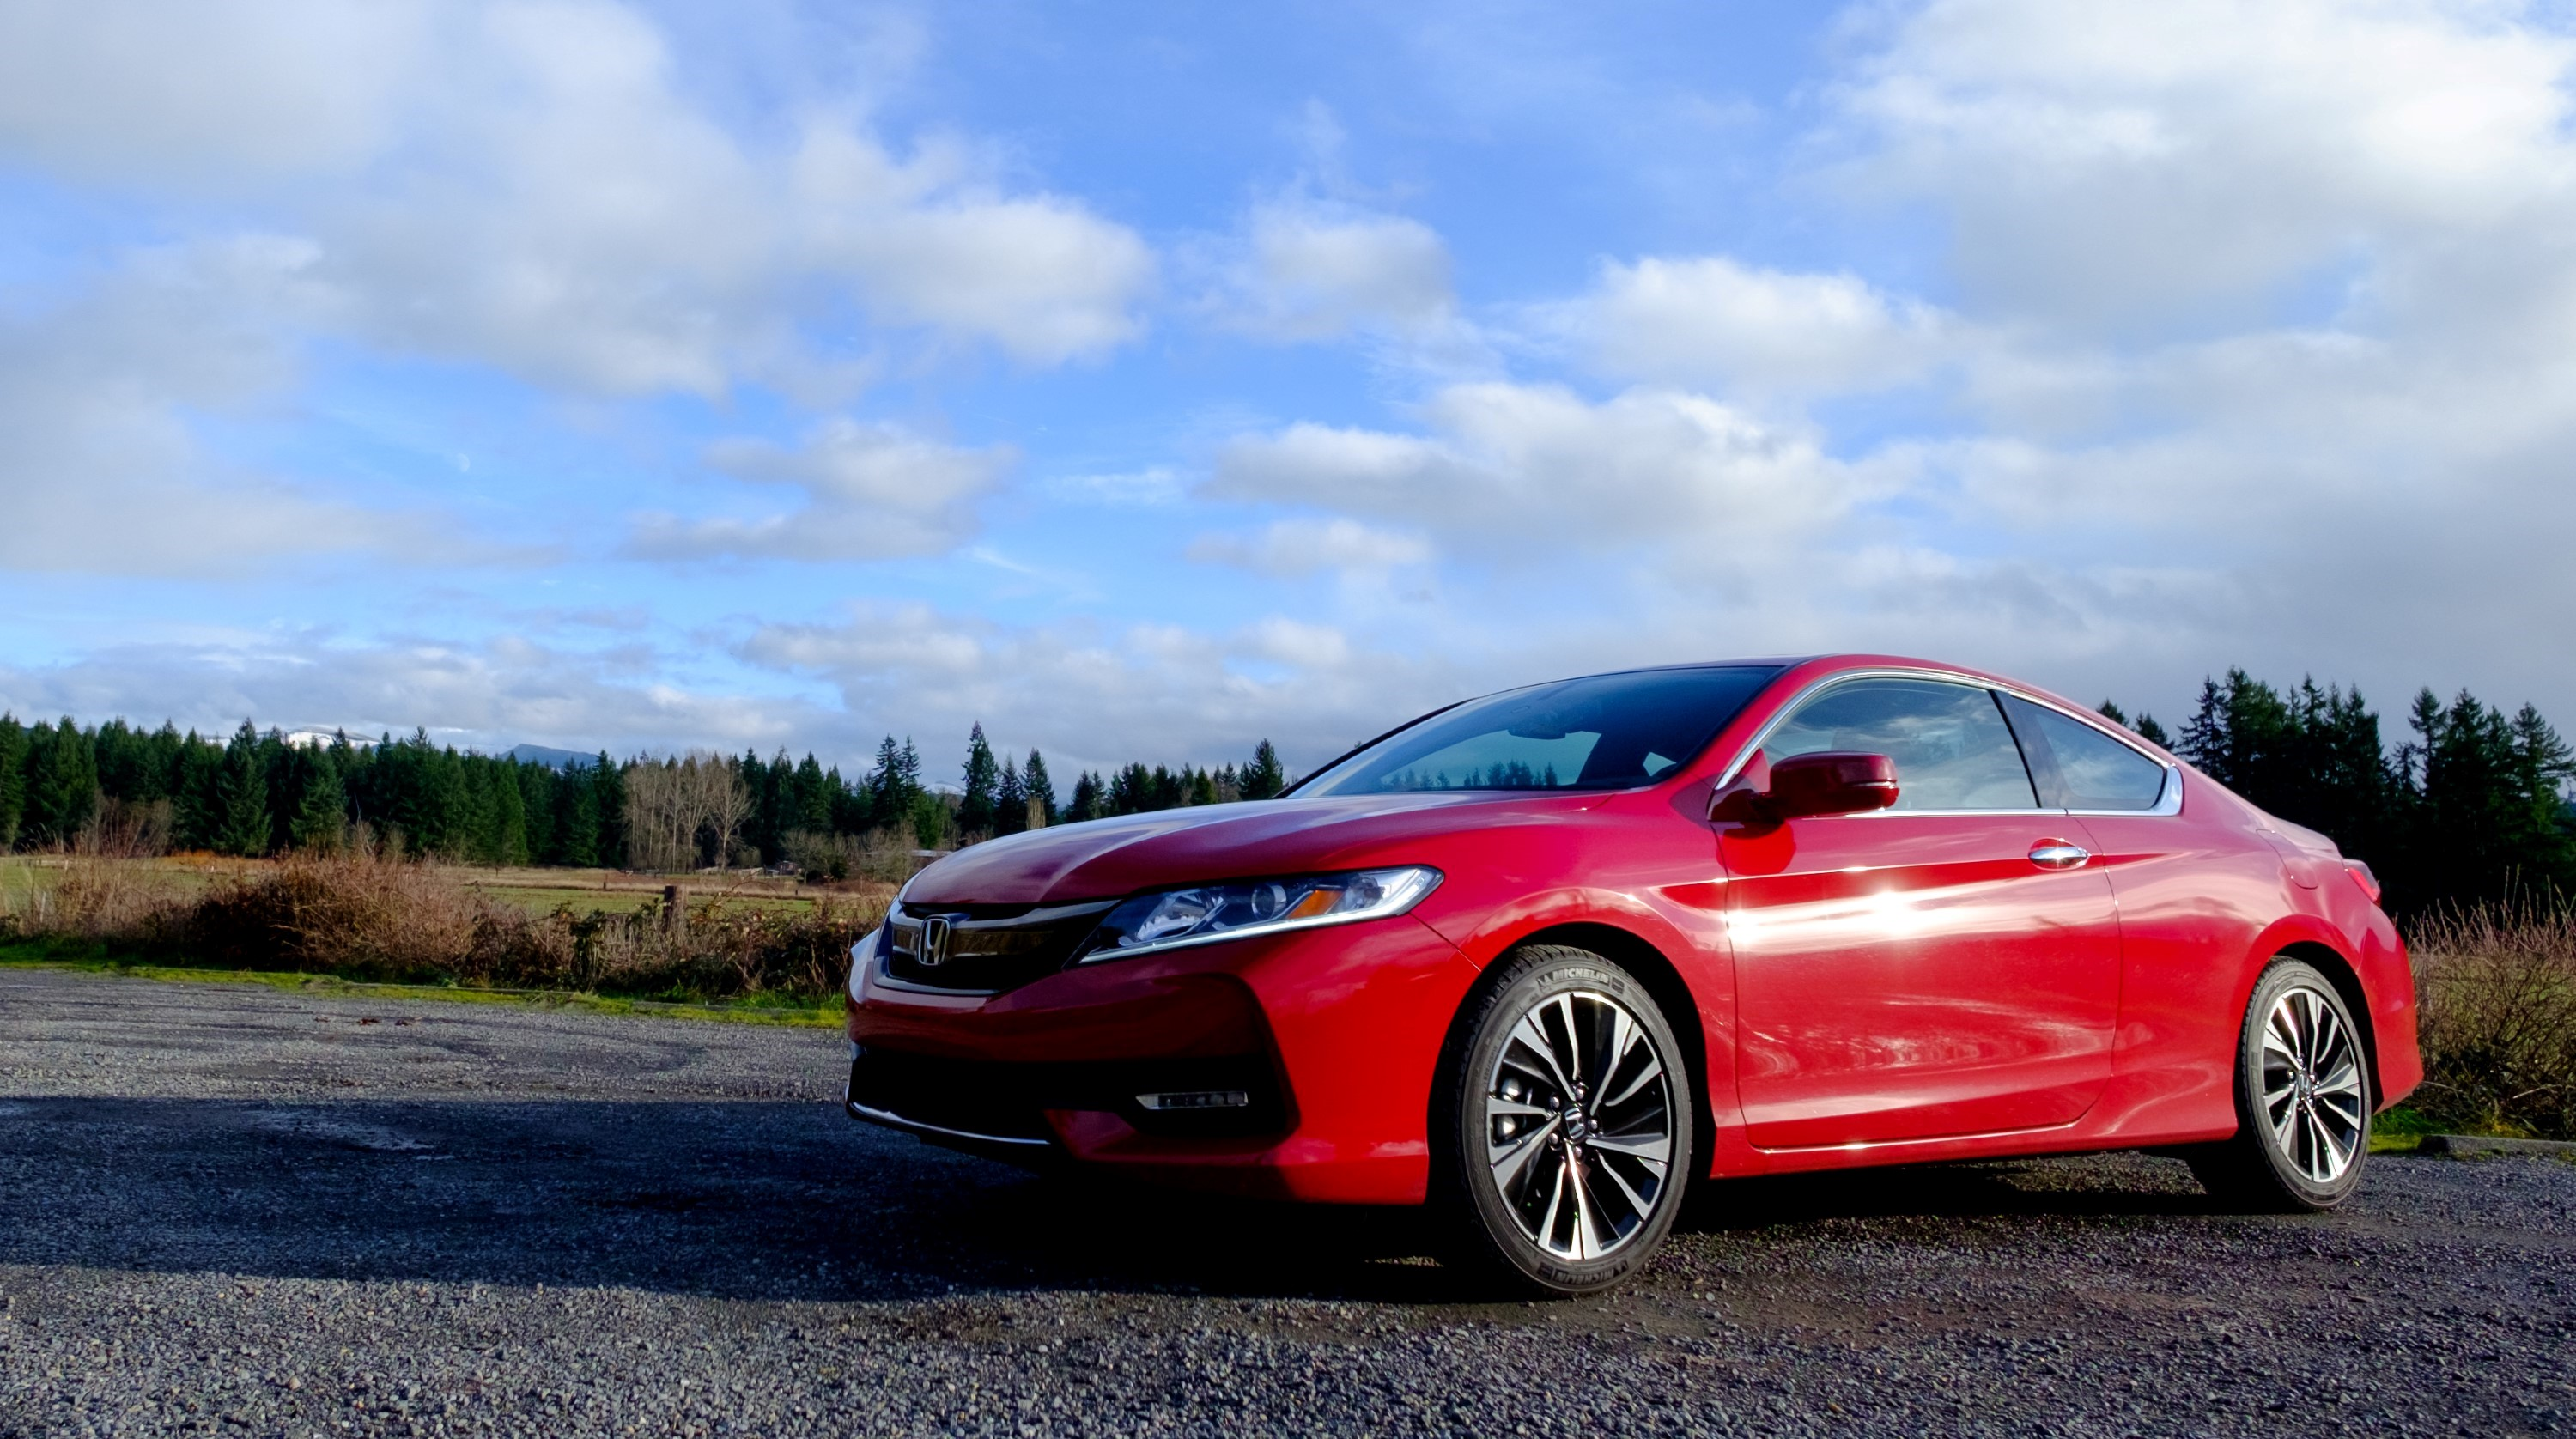 coupe fwd honda ex front accord spot dem listings price cvt